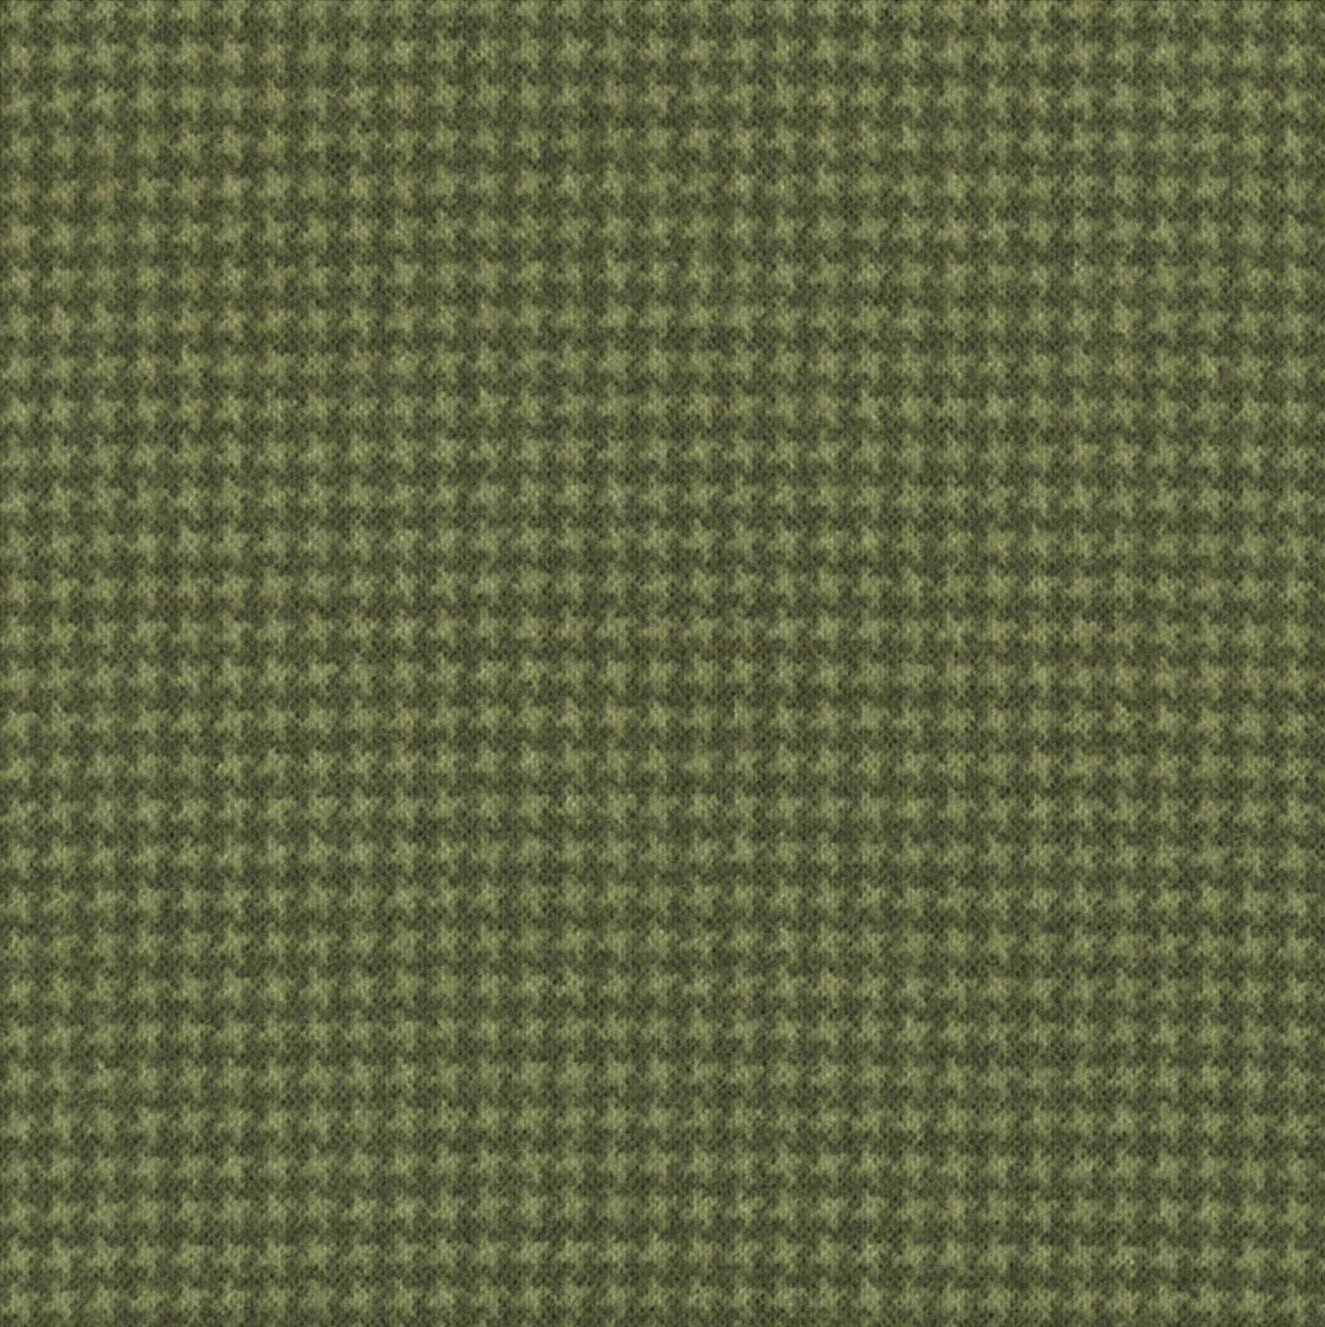 Woolies Flannel Tiny Houndstooth Green (MASF18122-G2)